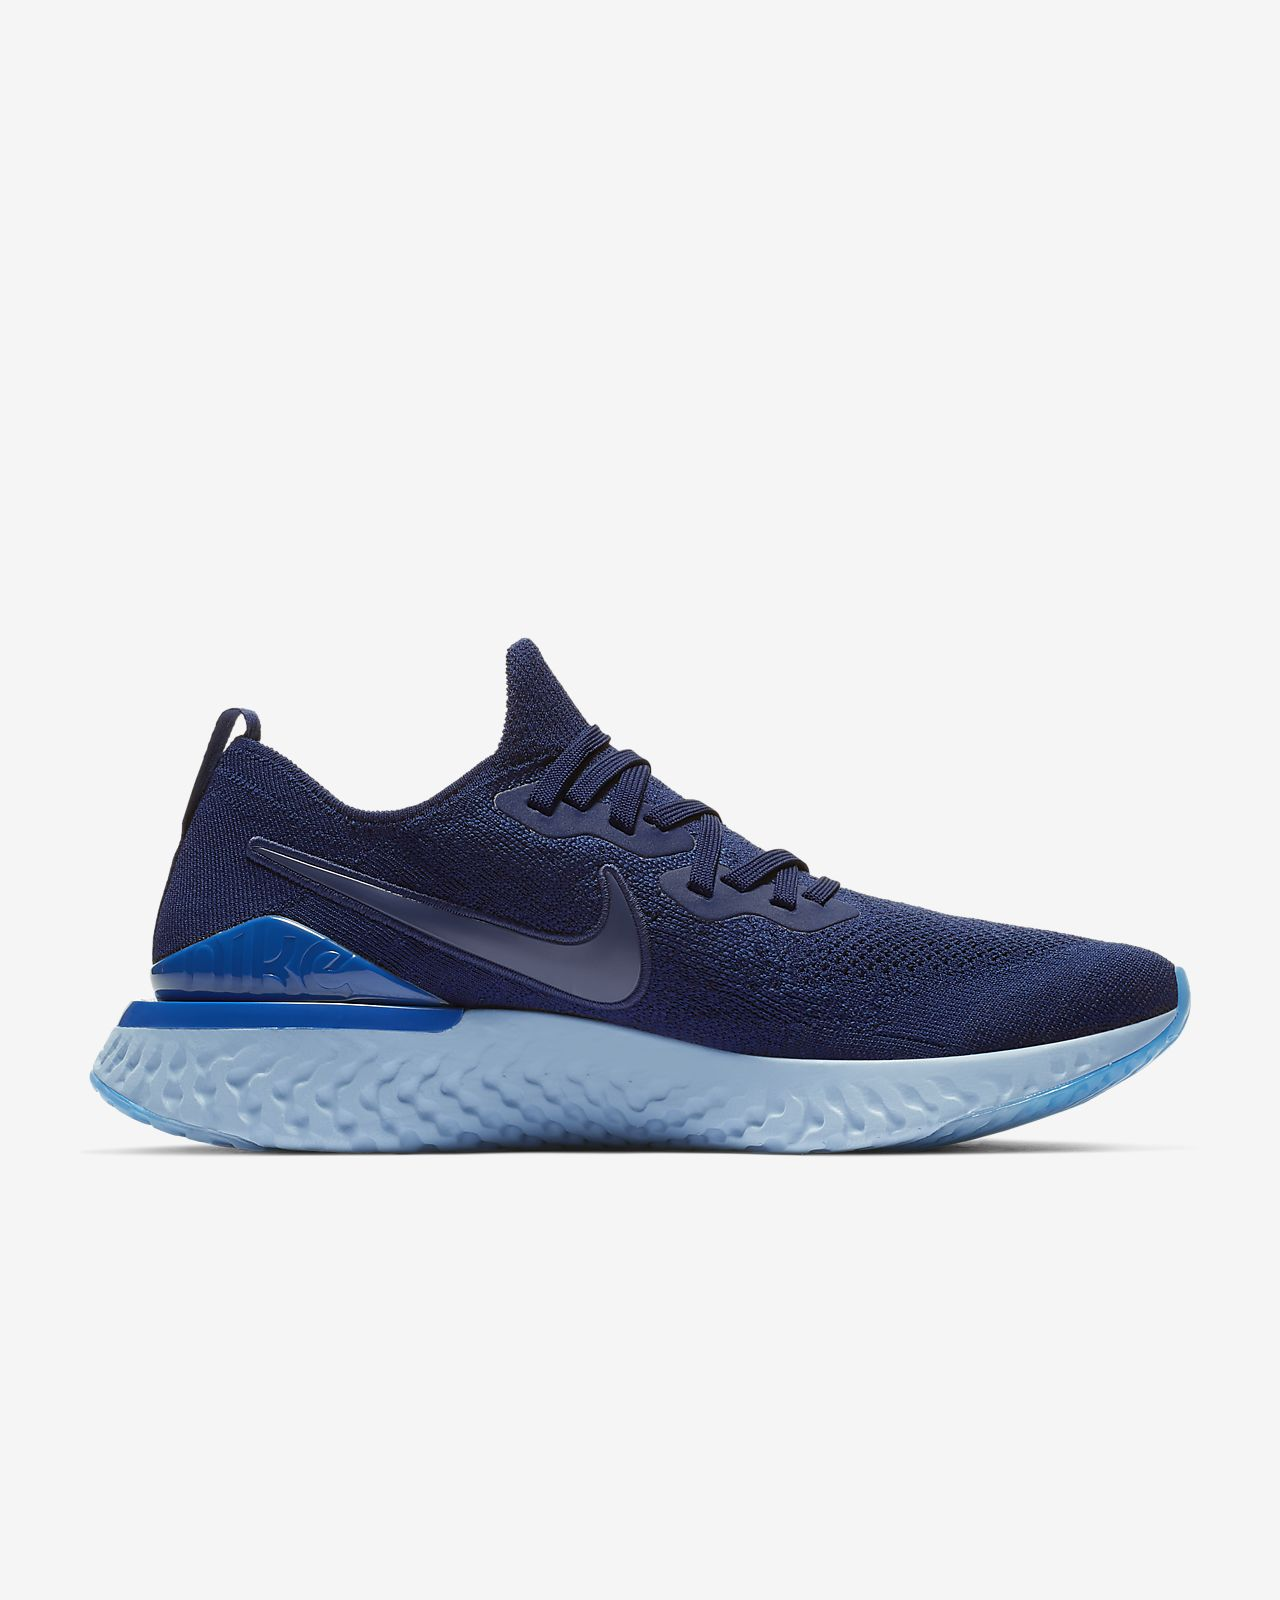 reputable site bc442 c1571 ... Nike Epic React Flyknit 2 Men s Running Shoe